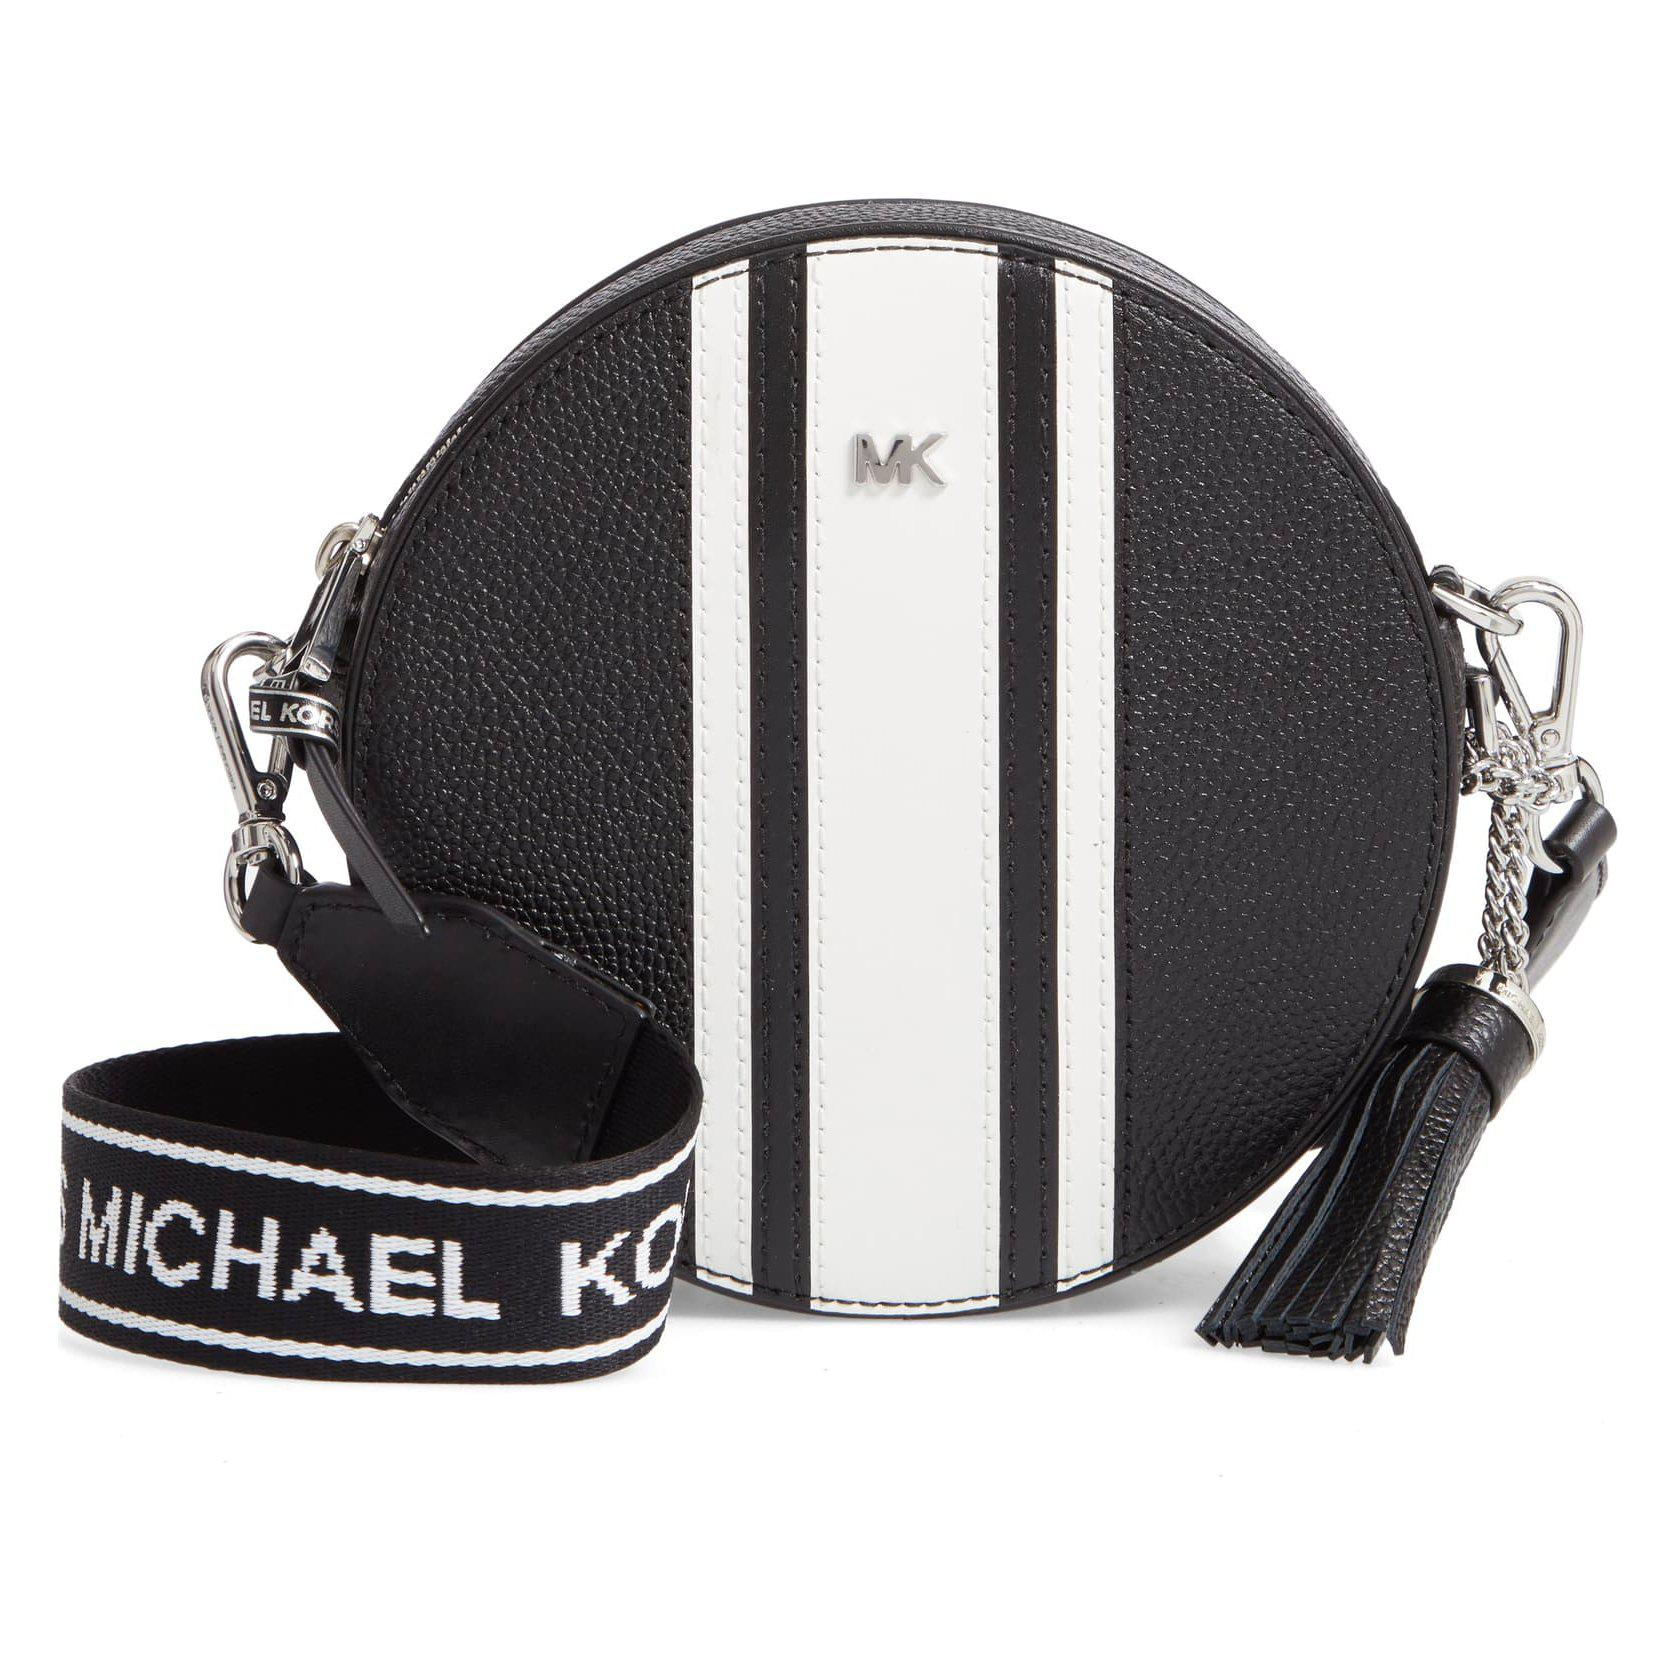 Michael Kors Leather Canteen White Black Crossbody Bag